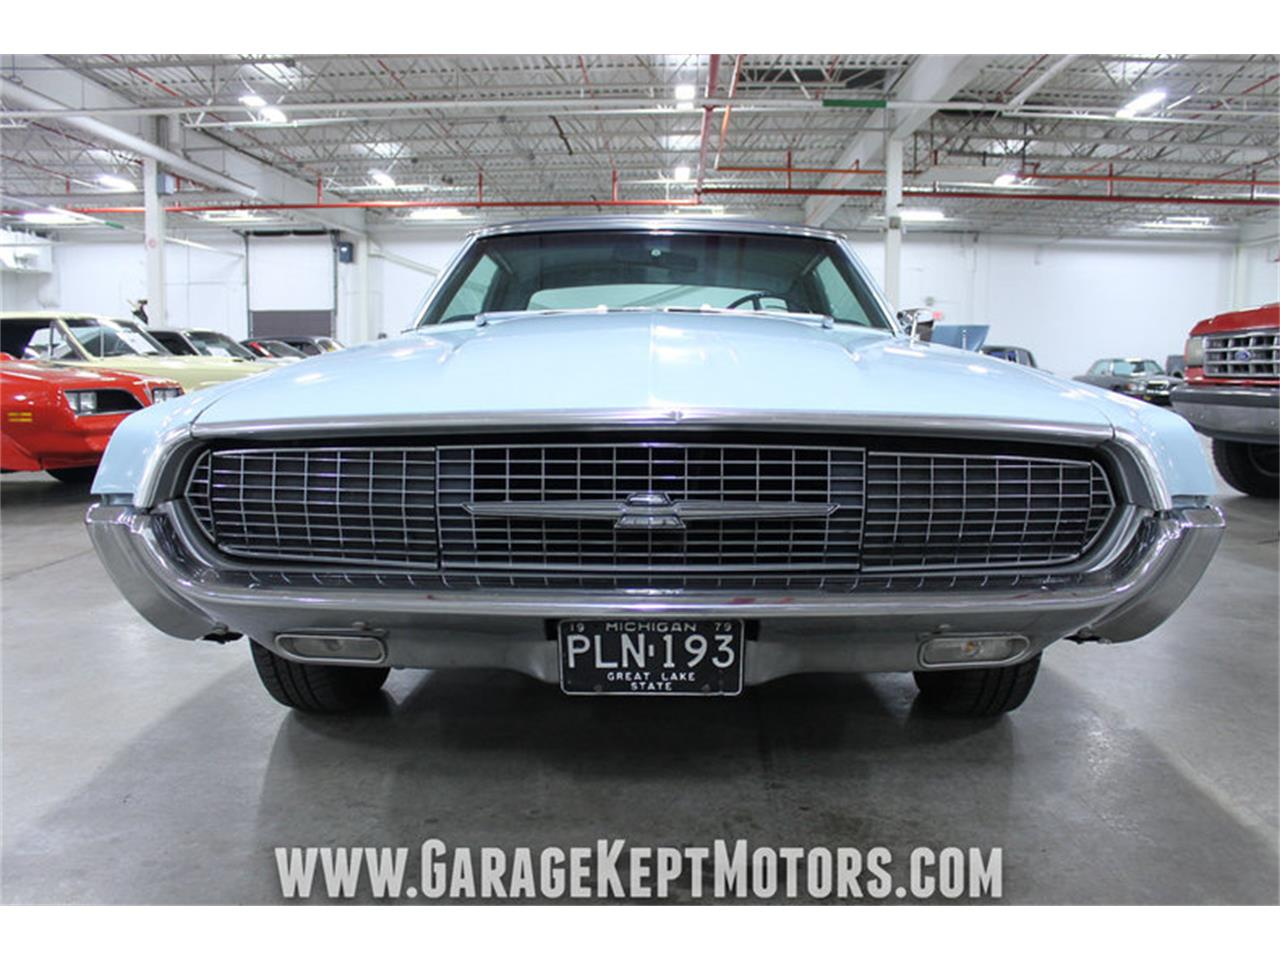 Large Picture of Classic 1967 Ford Thunderbird 2-Door Landau located in Michigan - $11,900.00 Offered by Garage Kept Motors - LU7P